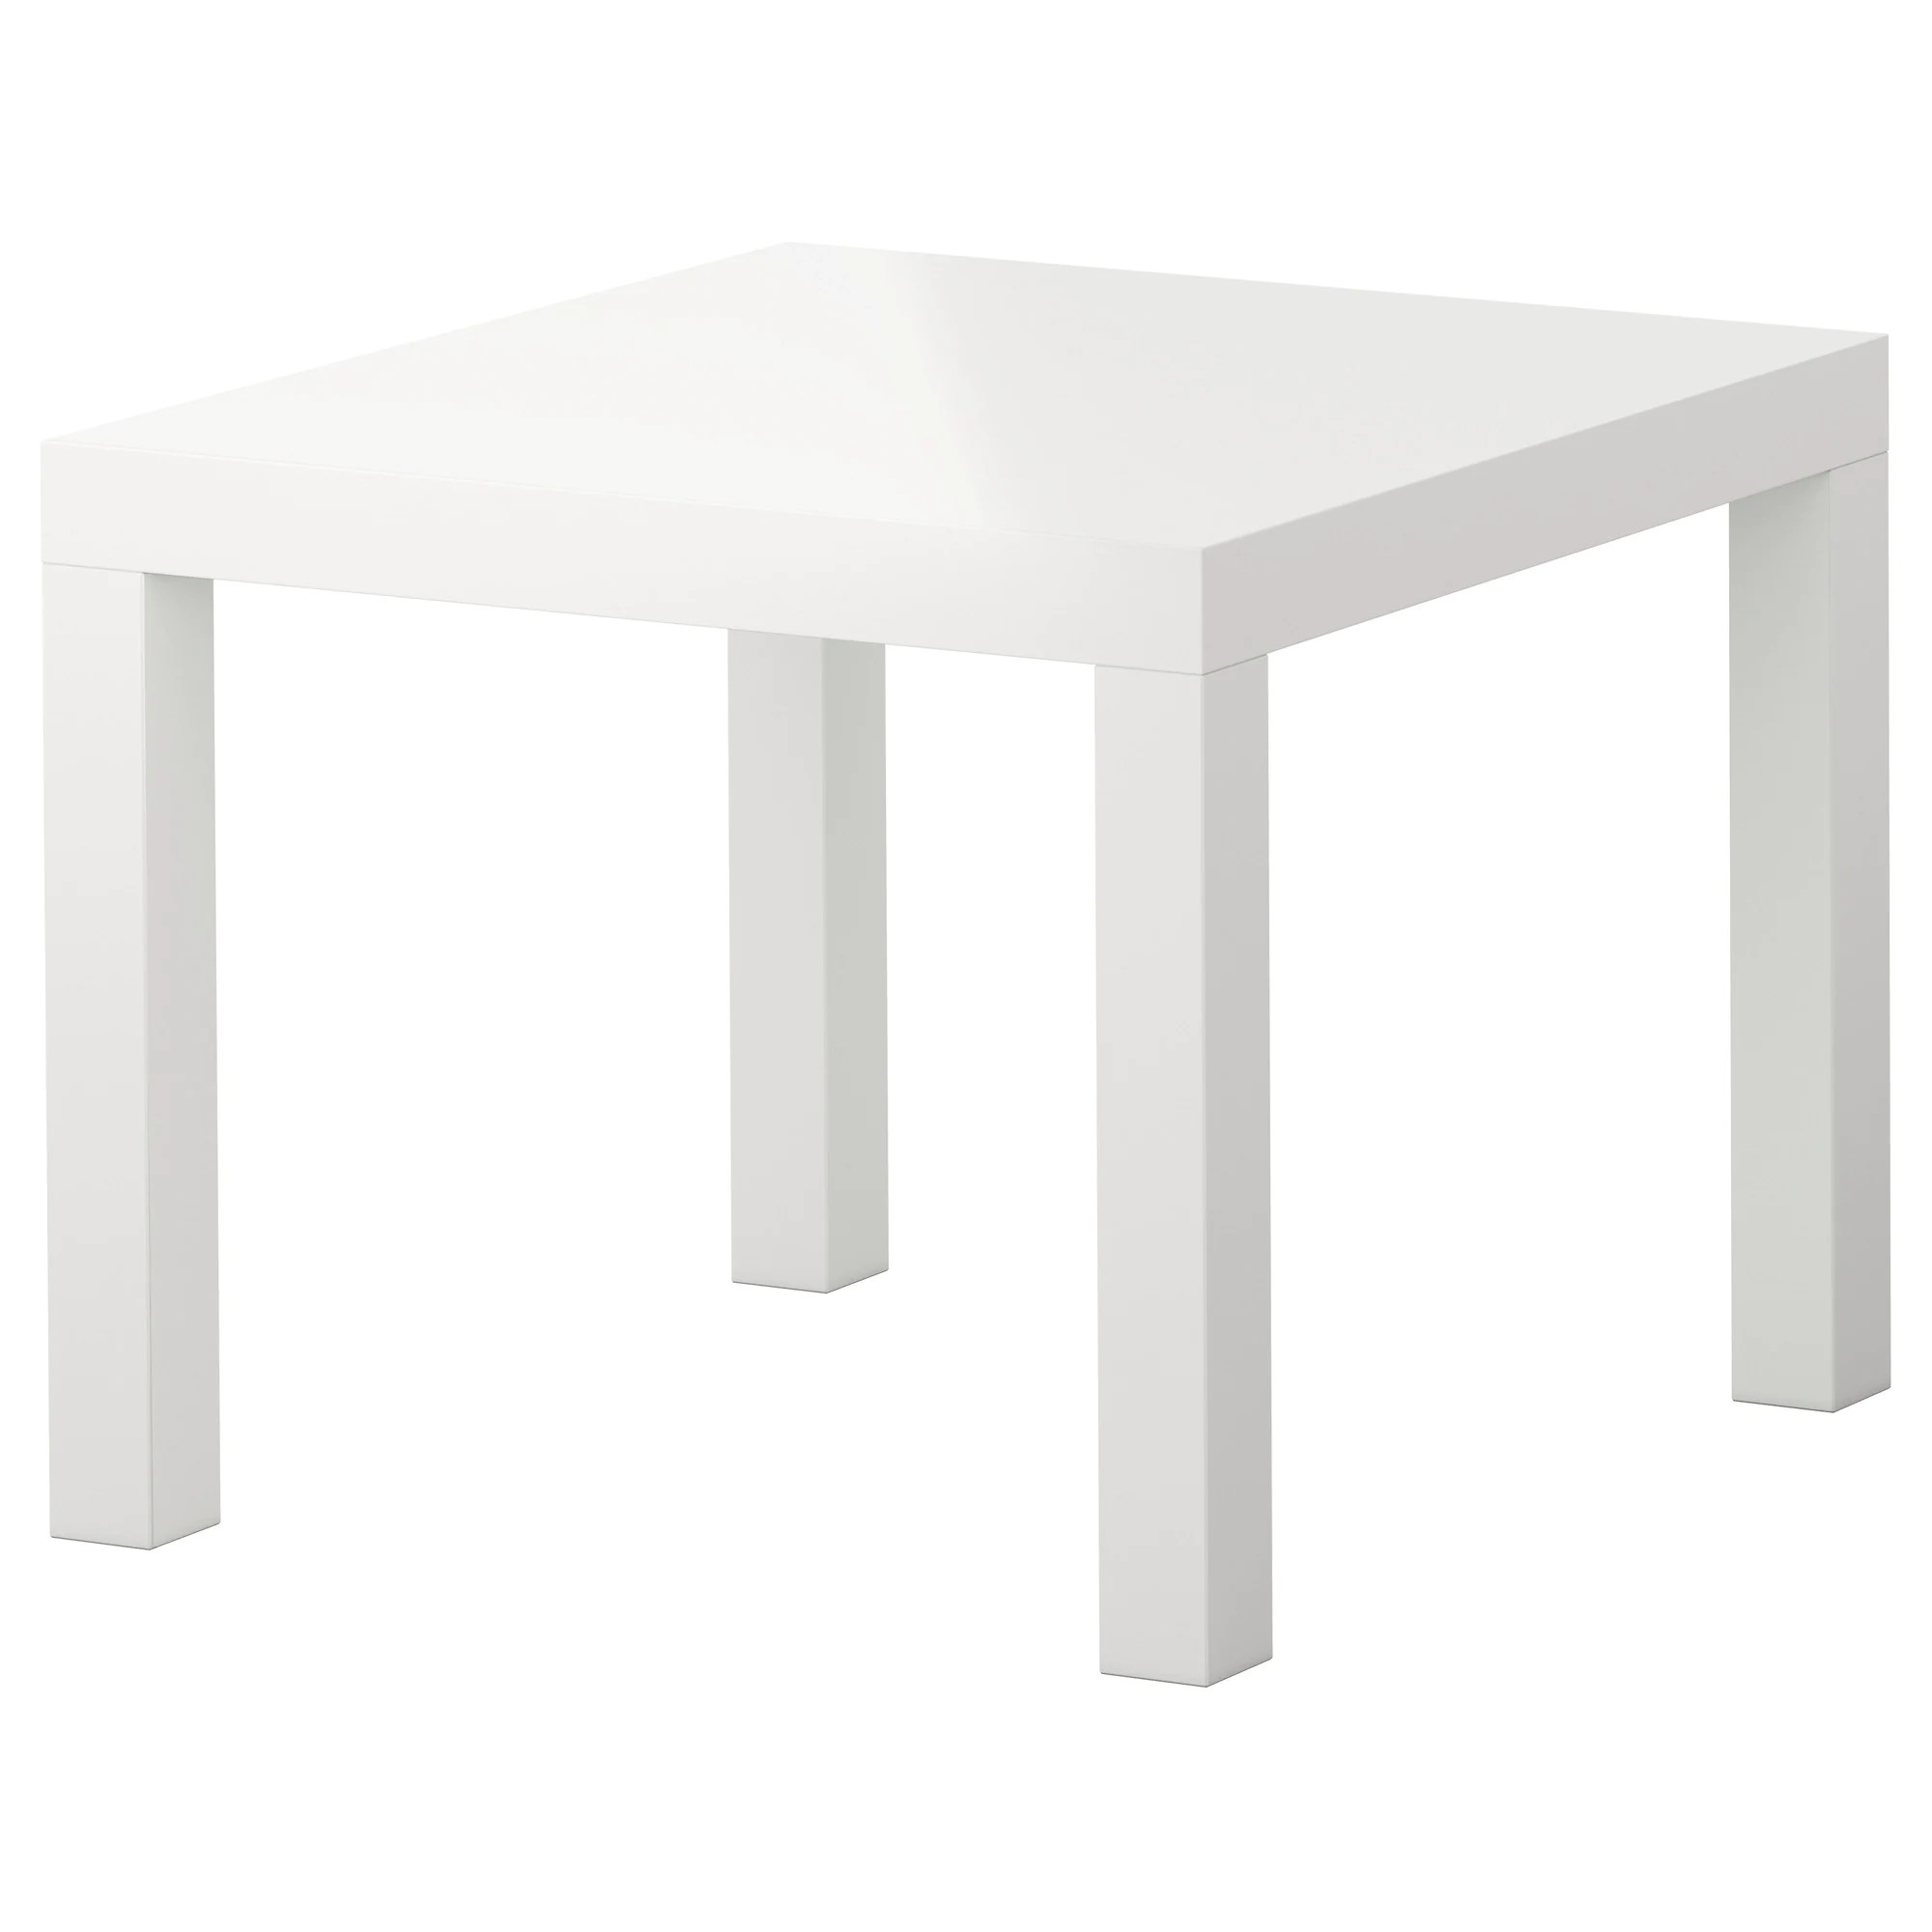 Table D'appoint Ikea Lack Table D Appoint Brillant Blanc